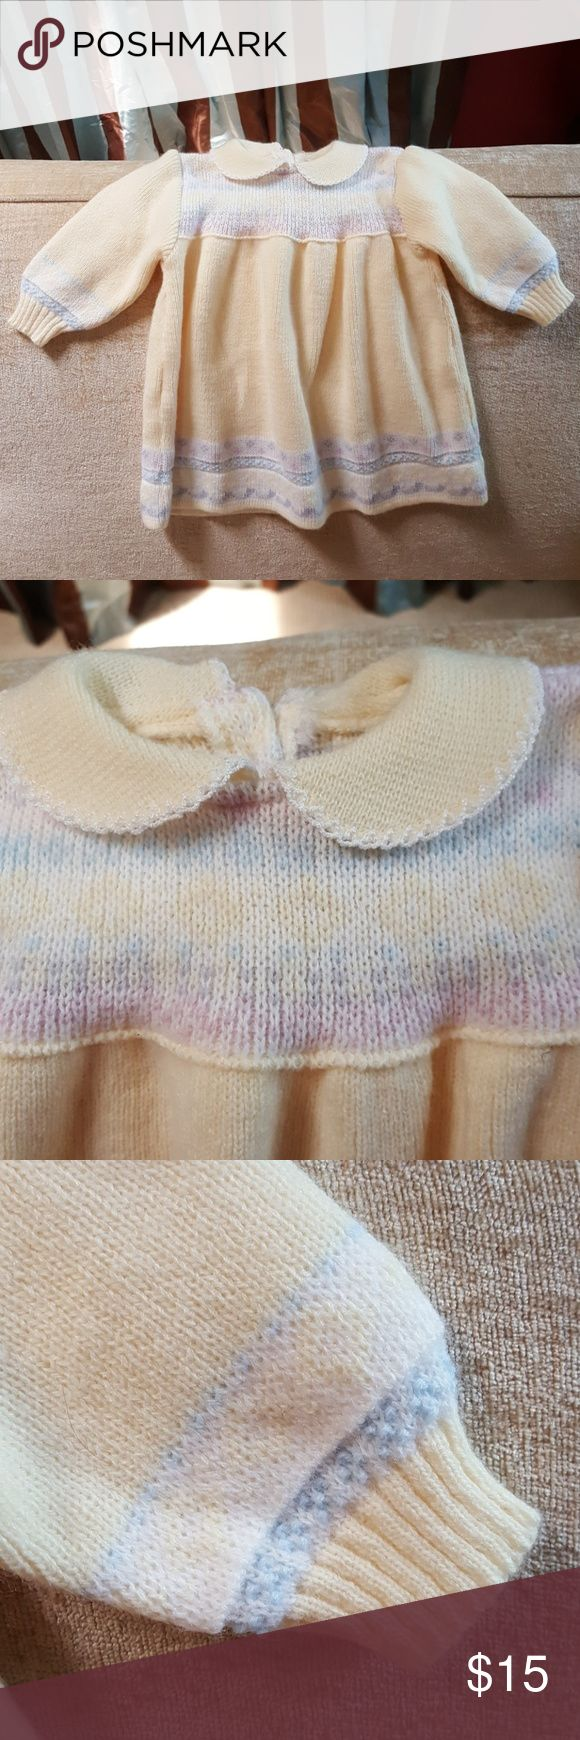 Clayeux Little Girls Knit Dress Cuddly Soft. Yellow with pastel pattern little girls dress. Excellent Condition. Smoke Free Home. New Price Reduction Clayeux Dresses